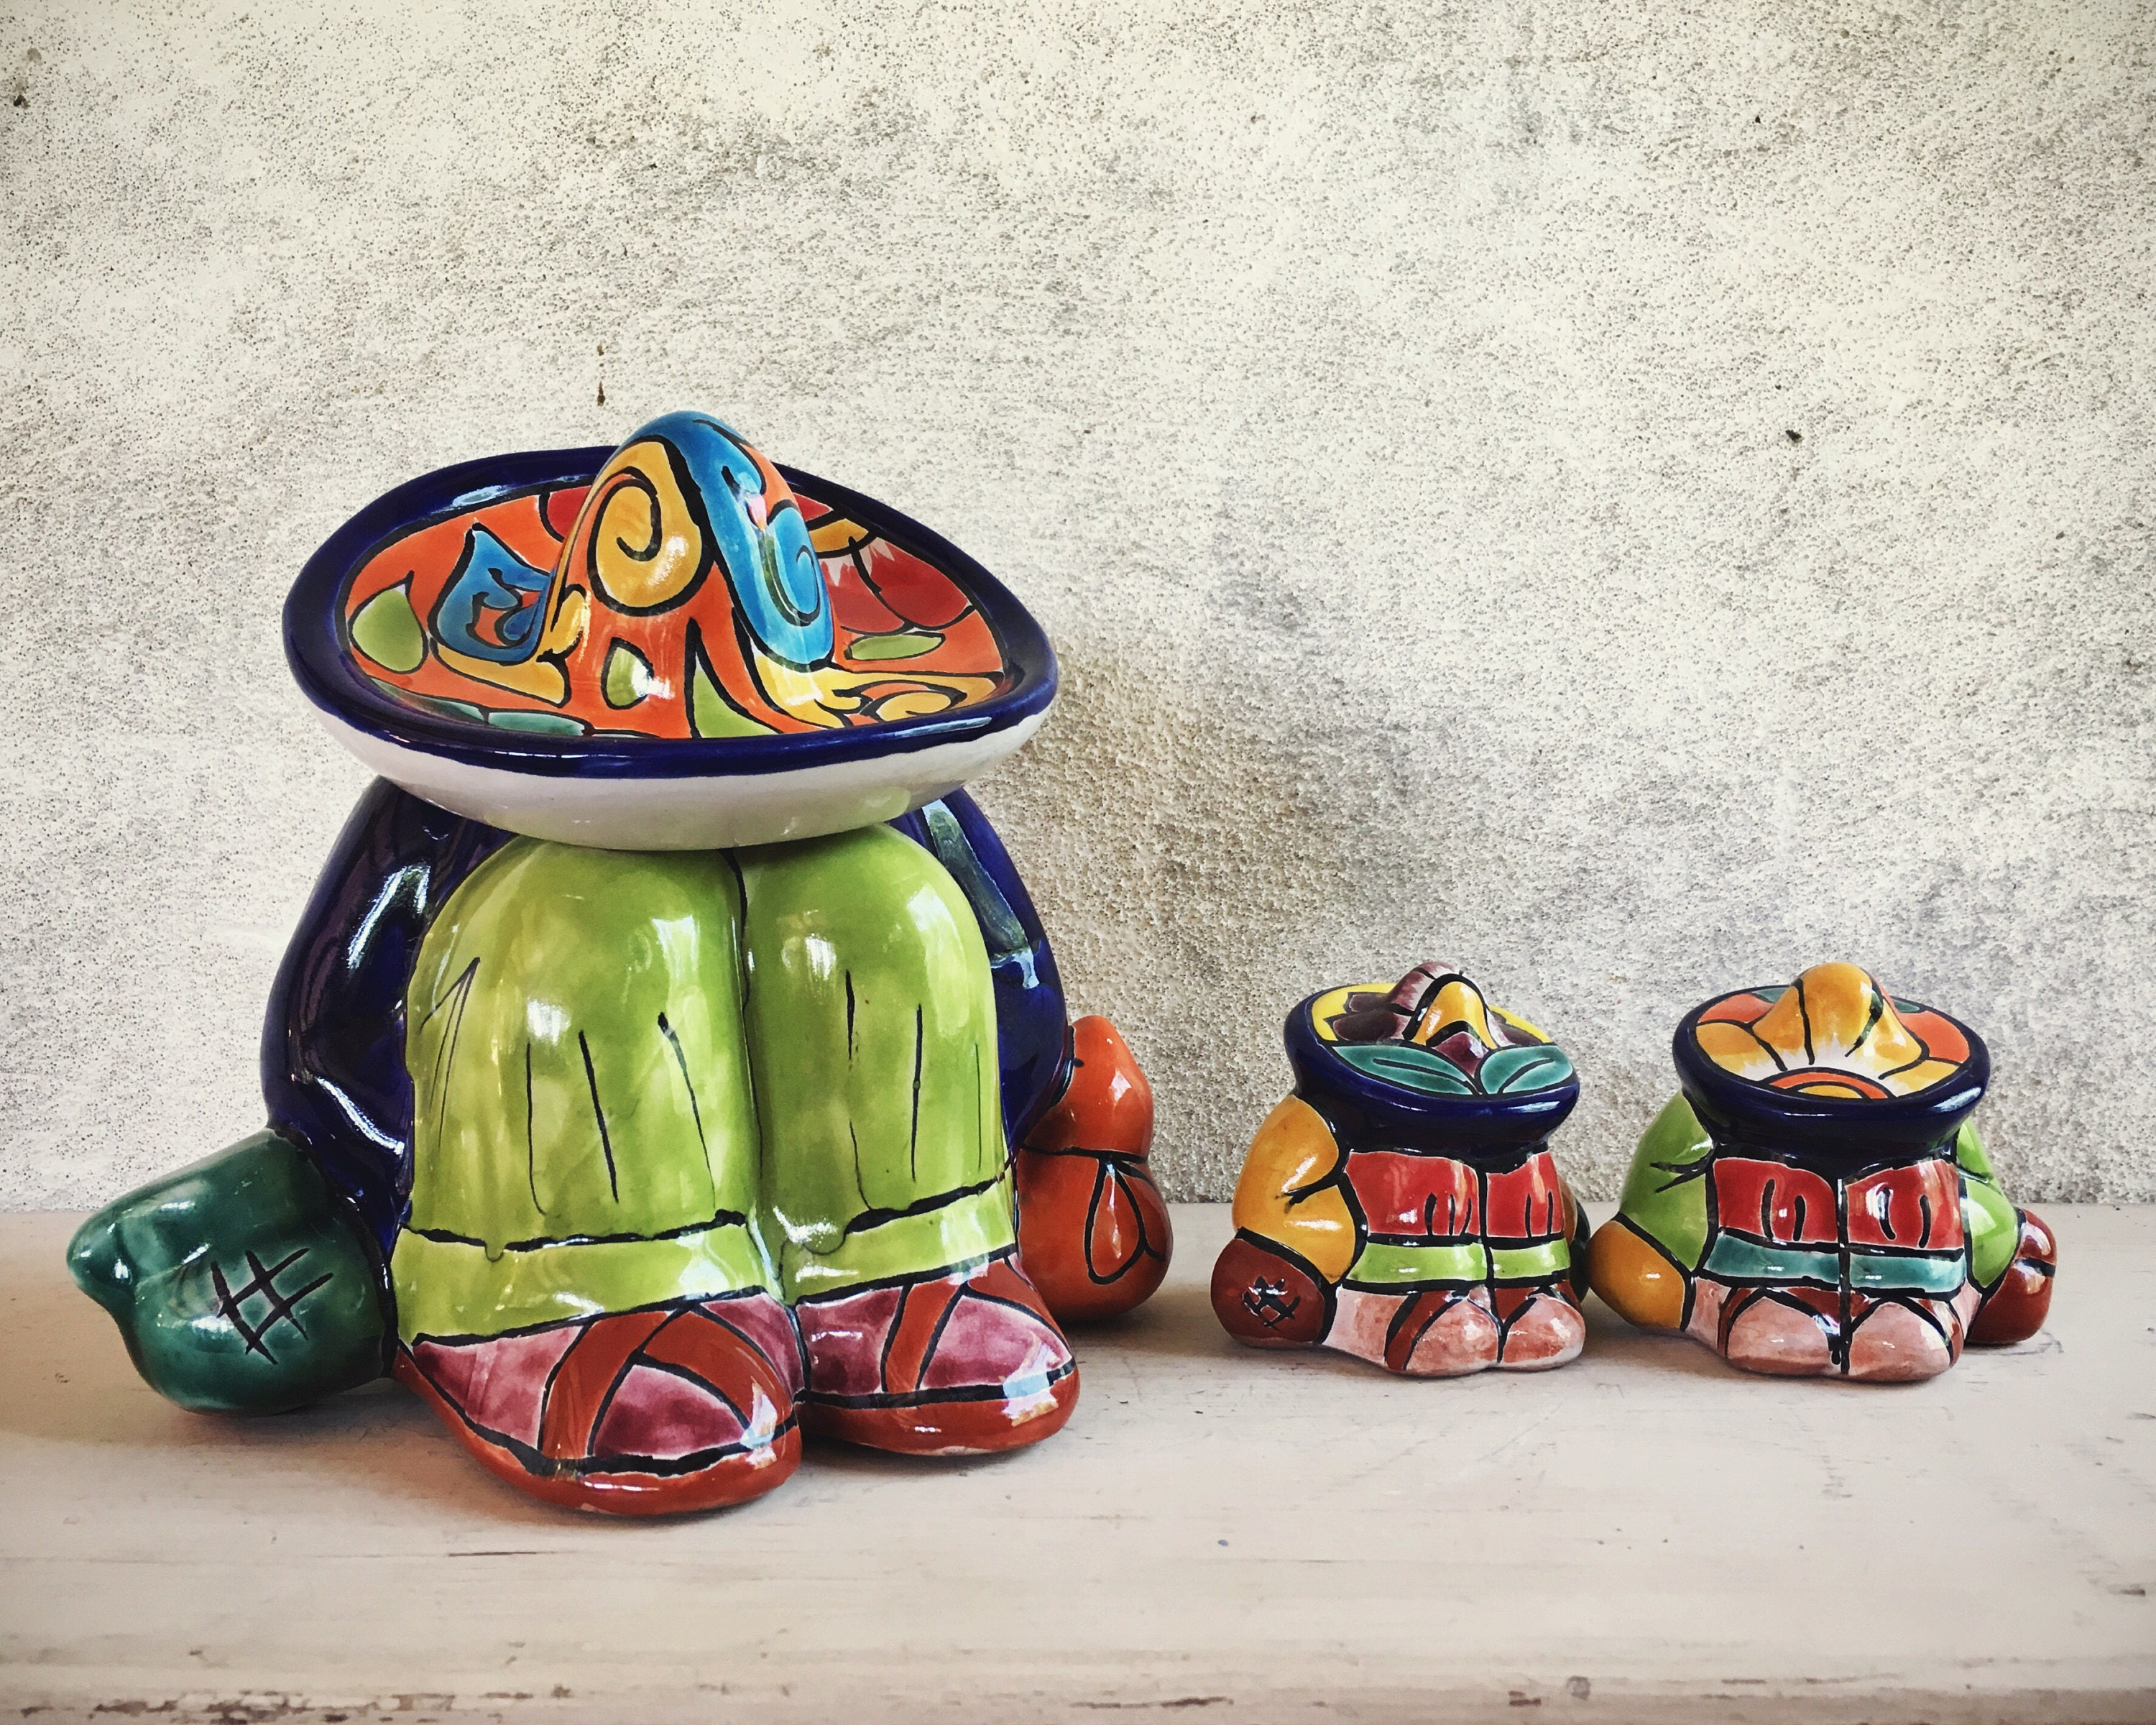 Vintage Talavera Pottery Sleeping Hombre Mexican Rustic Home And Patio Decor